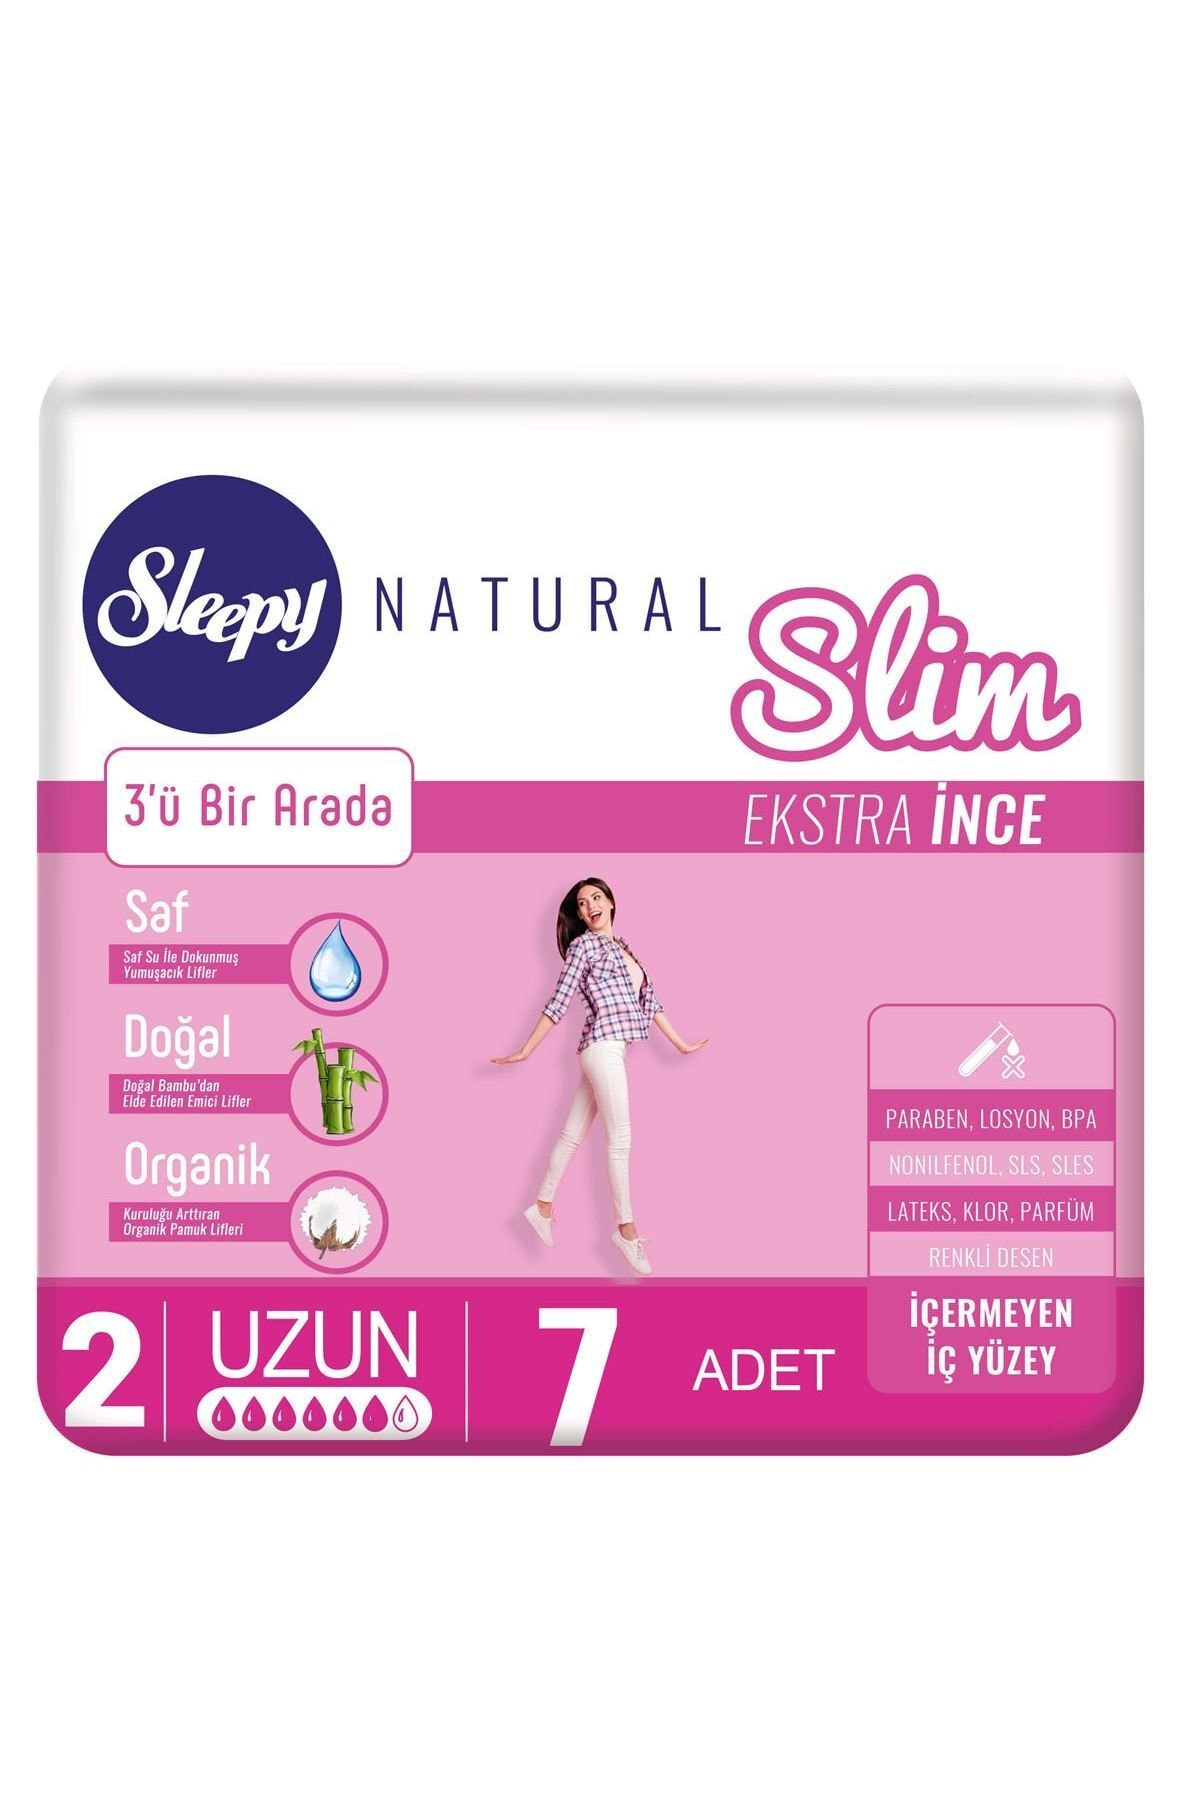 Sleepy Natural Slim Ekstra İnce Uzun 7 Ped